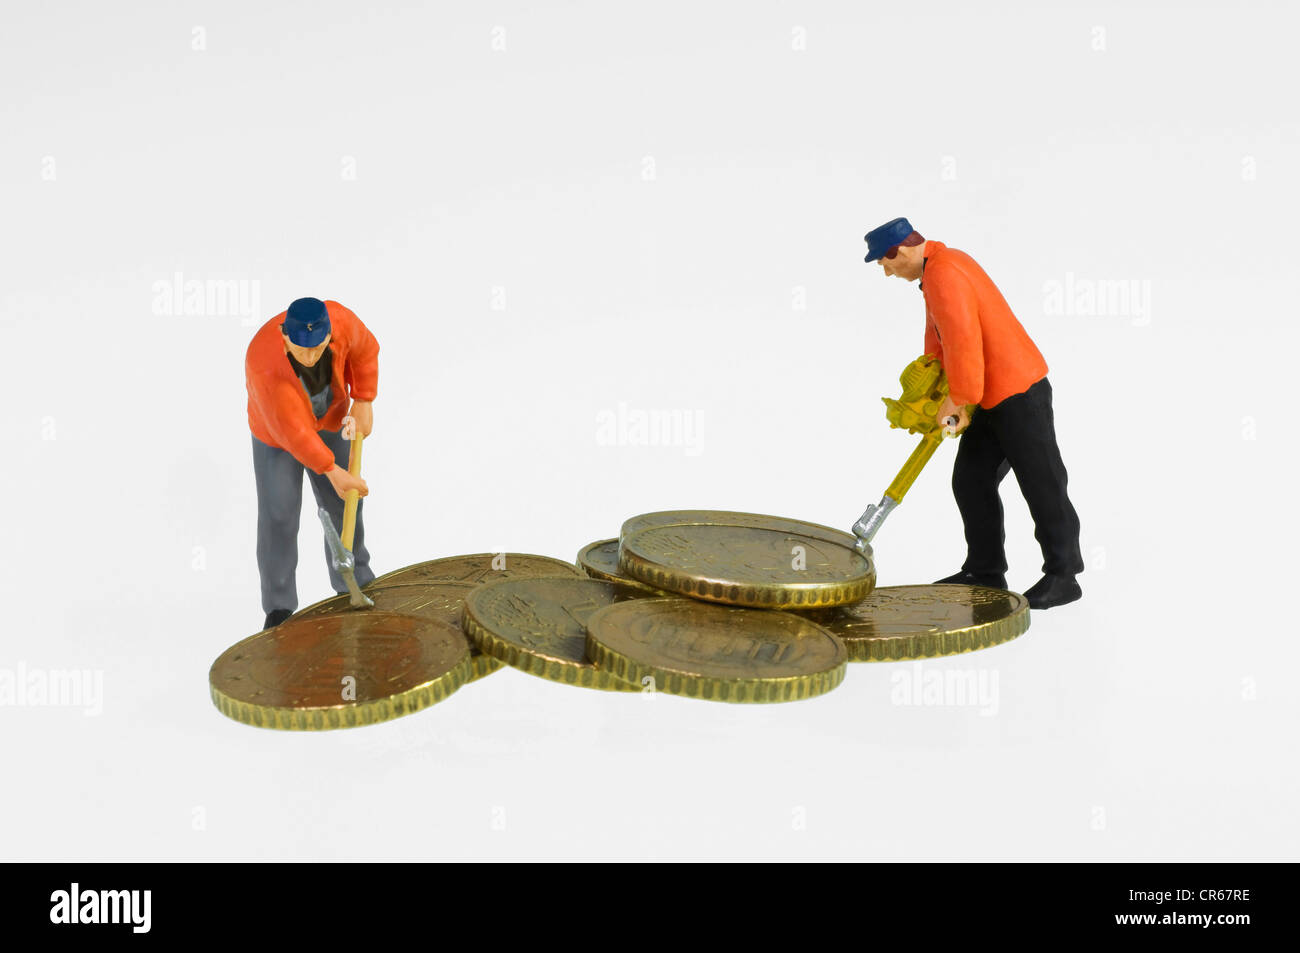 Miniature figures of construction workers with a pickaxe and a jackhammer working on a pile of euro coins, symbolic - Stock Image